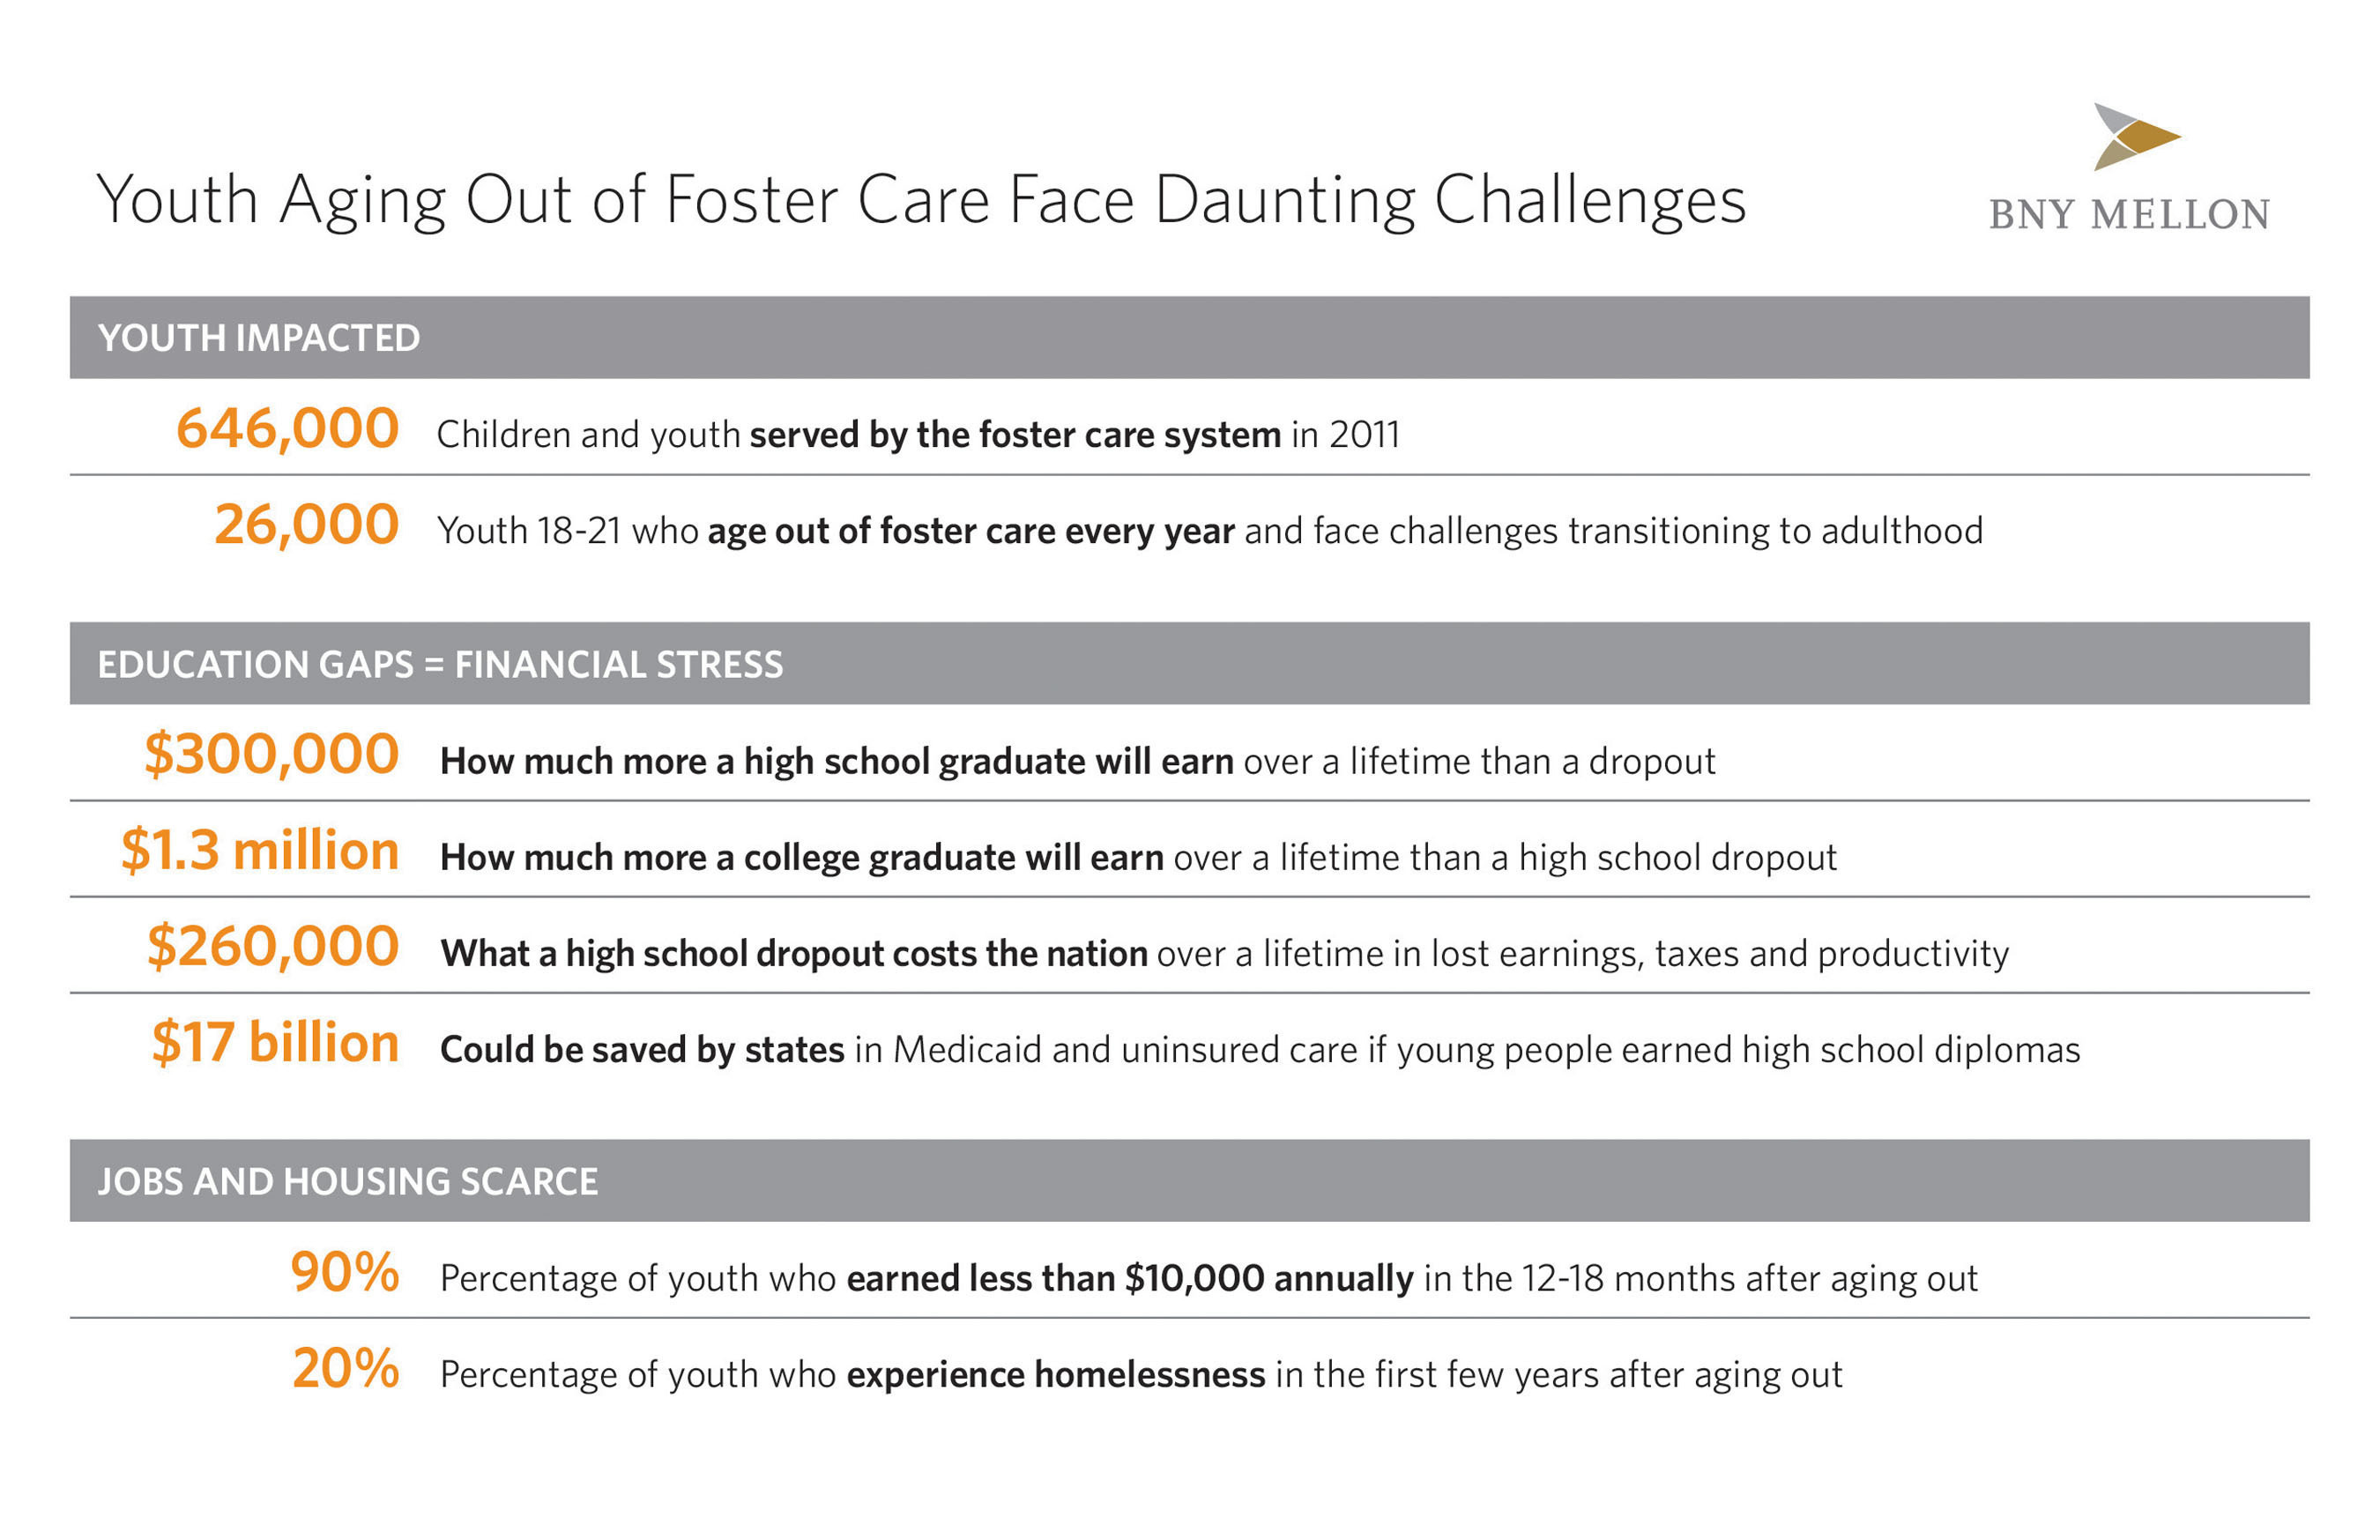 Youth aging out of foster care face daunting challenges when they transition to adulthood.  Gaps in their education create both short and long-term financial stress, and housing and jobs are often scarce.  BNY Mellon is committed to supporting vulnerable youth as they prepare for independence through its Pathways program, a $6 million, five-year global workforce development initiative.  To learn more, visit www.bnymellon.com/pathways.  (PRNewsFoto/BNY Mellon)